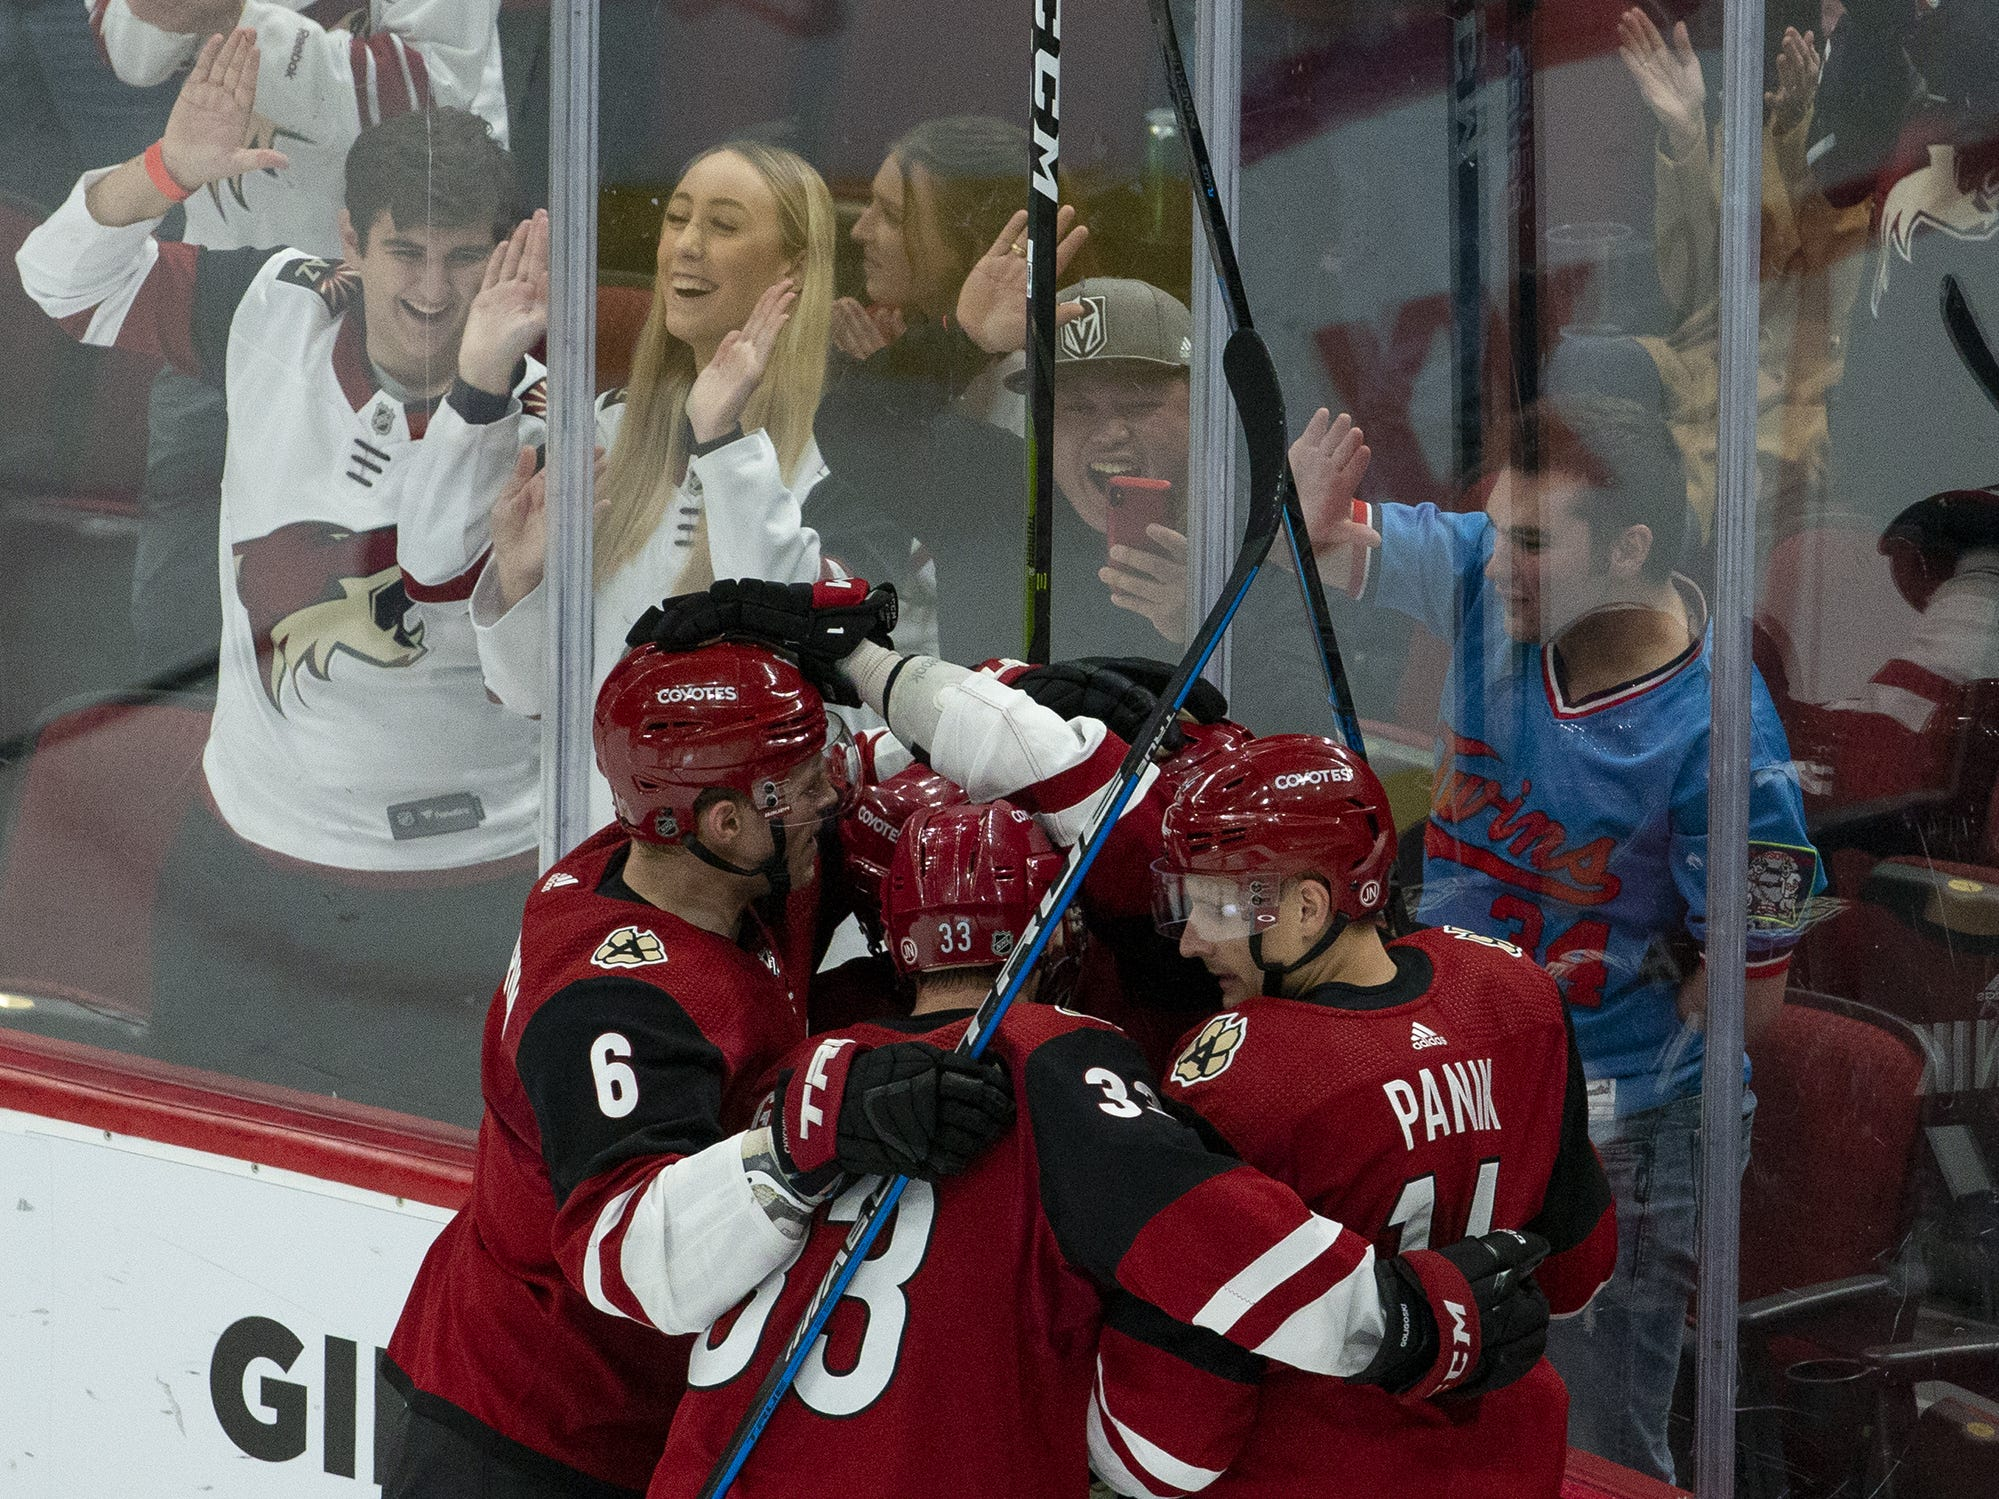 Arizona Coyotes celebrate a second goal by center Brad Richardson (15) during a NHL game against the Vancouver Canucks at Gila River Arena in Glendale on February 28.